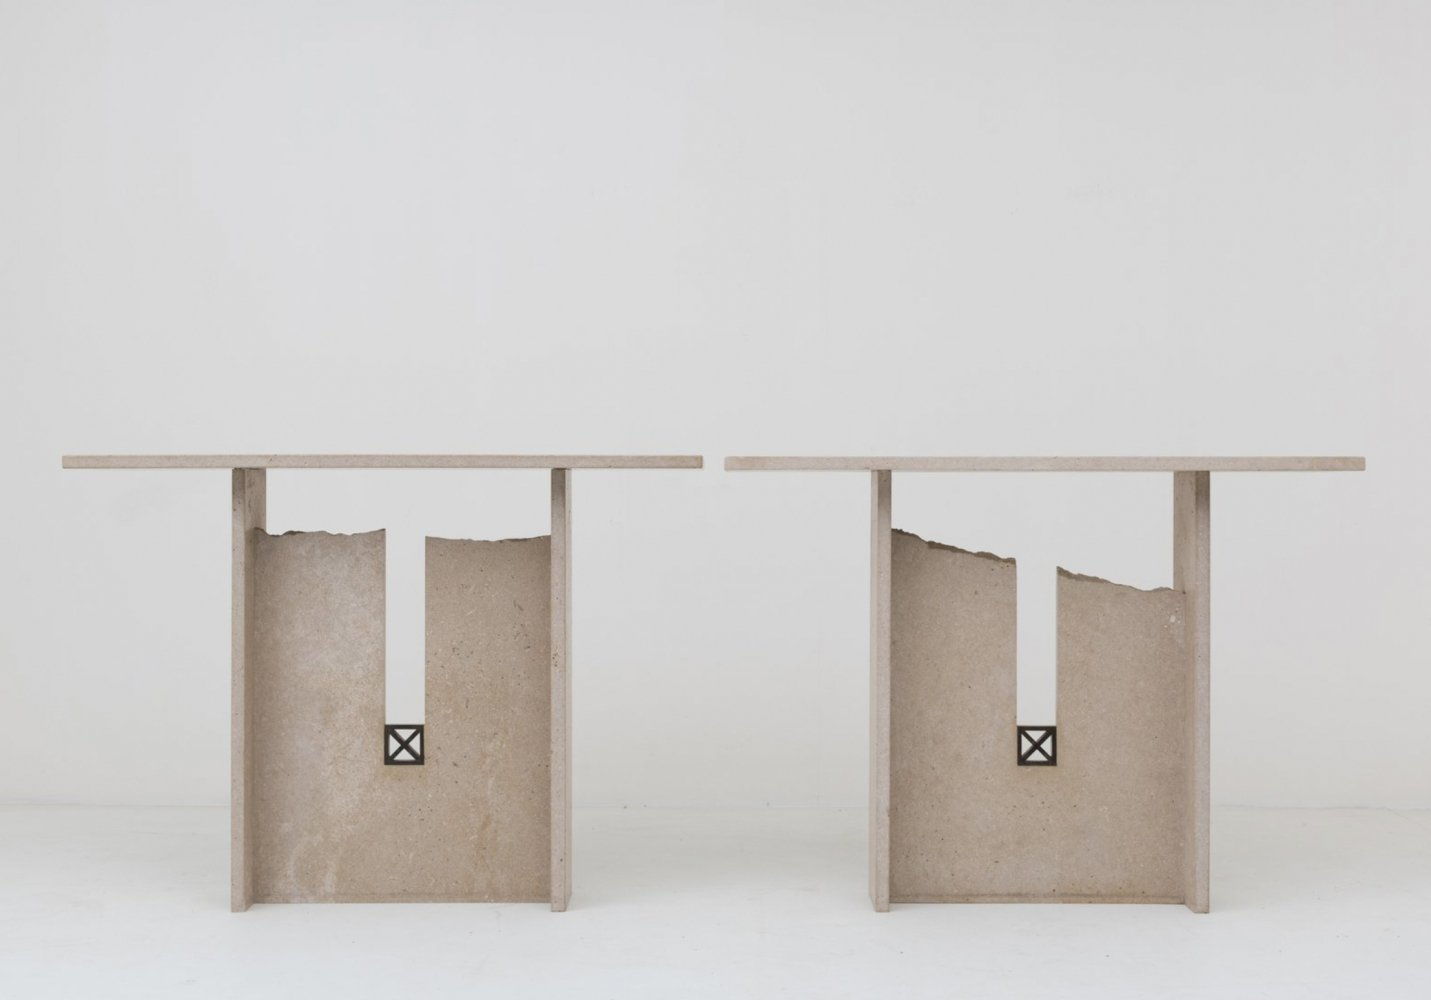 2 x Console Table by Georges Mathias, 1978